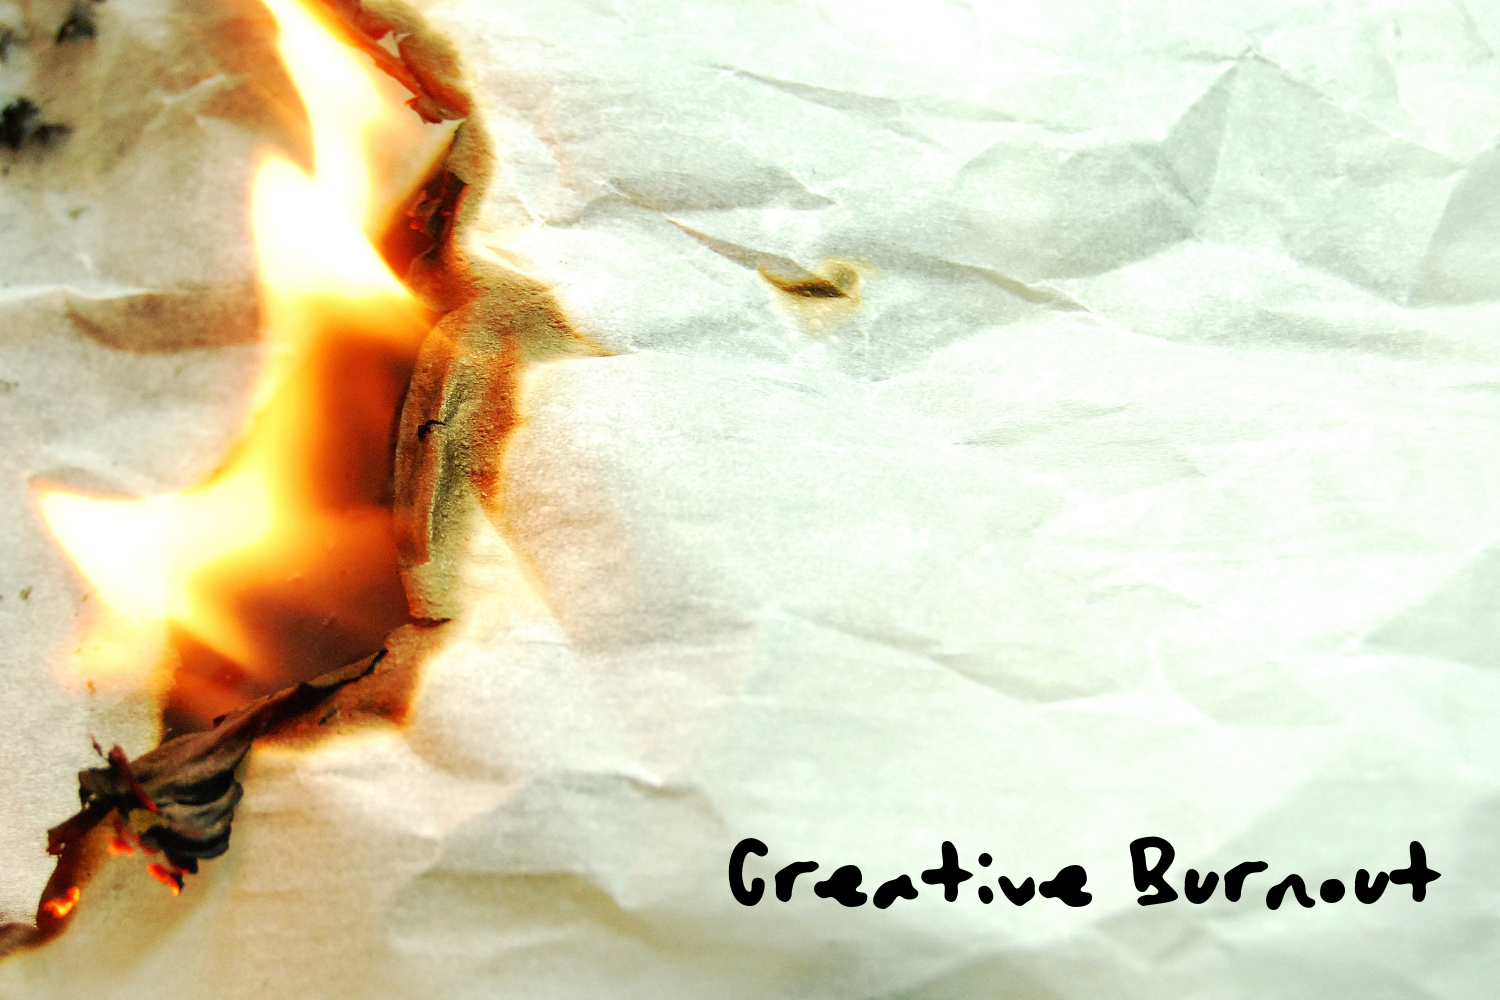 On Creative Burnout